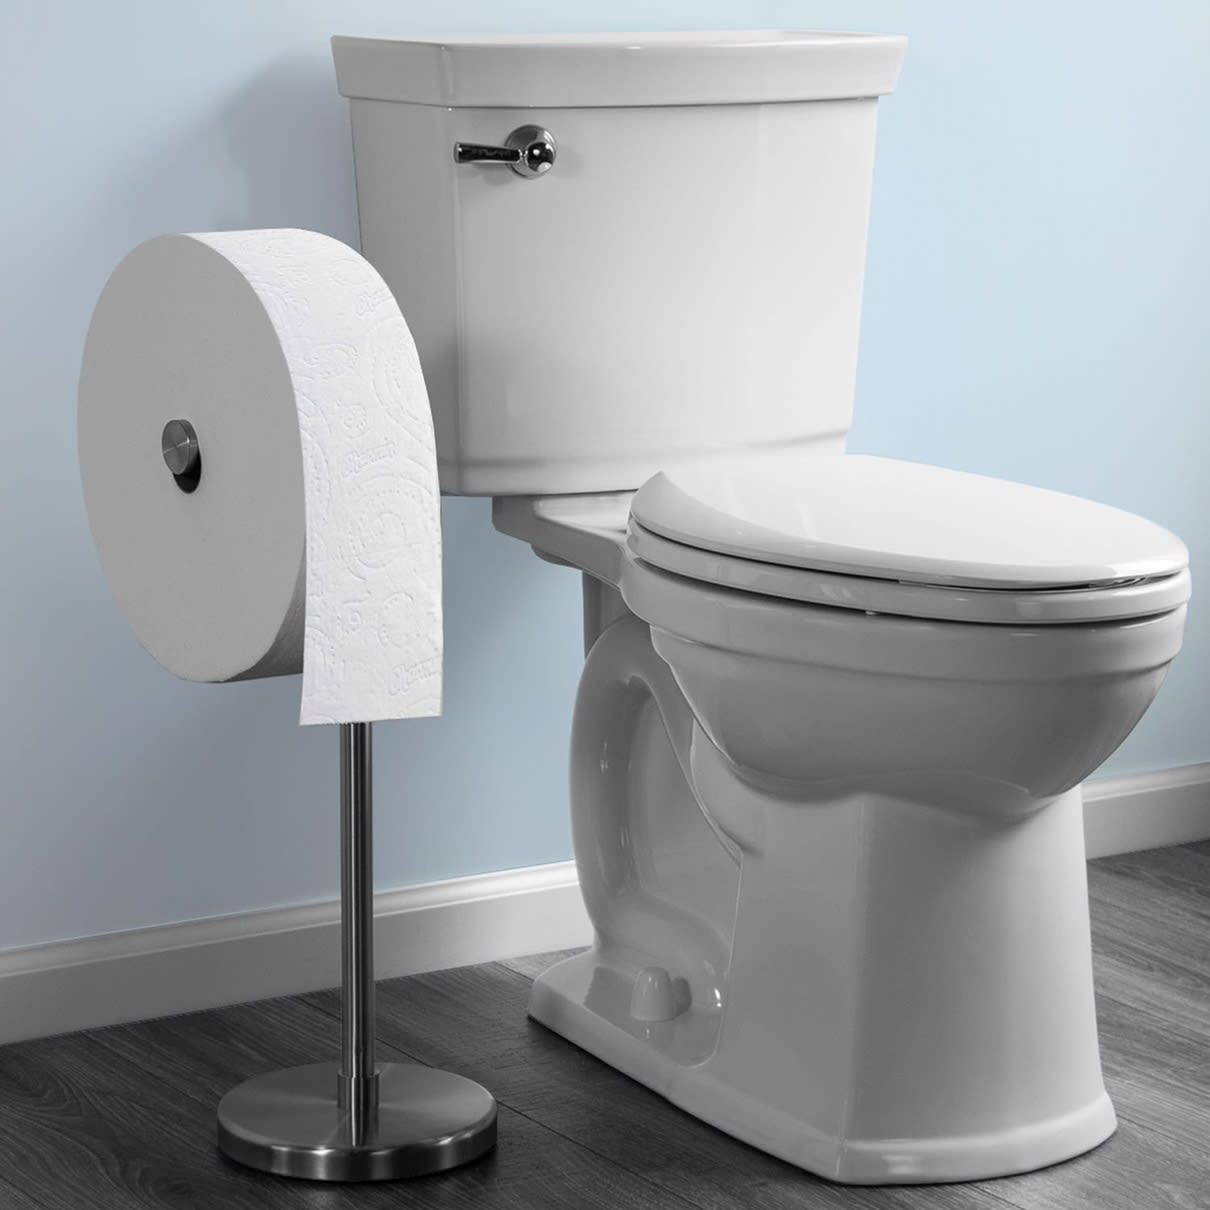 Septic safe giant toilet paper rolls